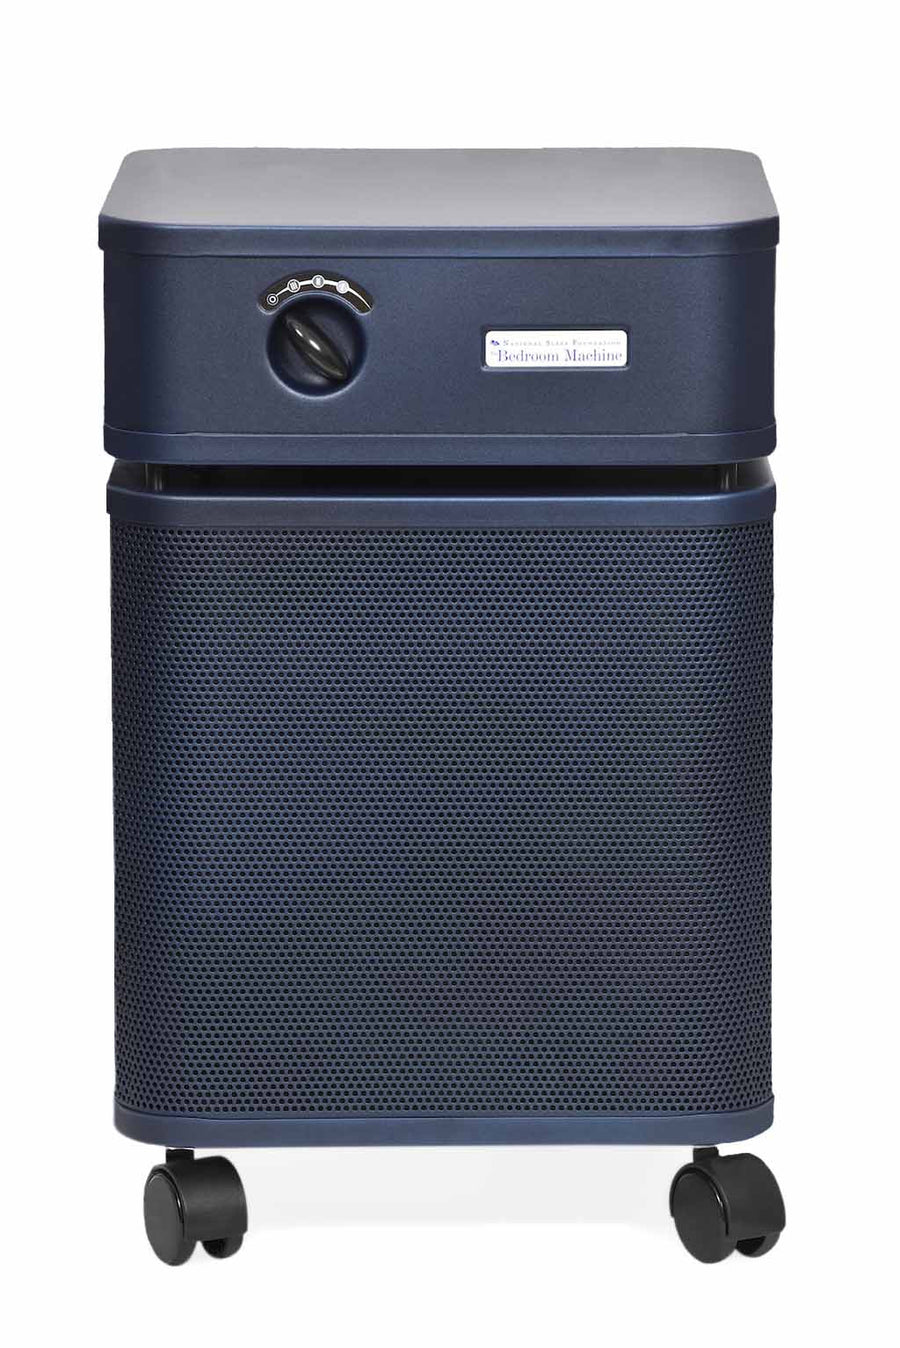 Bedroom Machine HM402 Standard HEPA Air Purifier